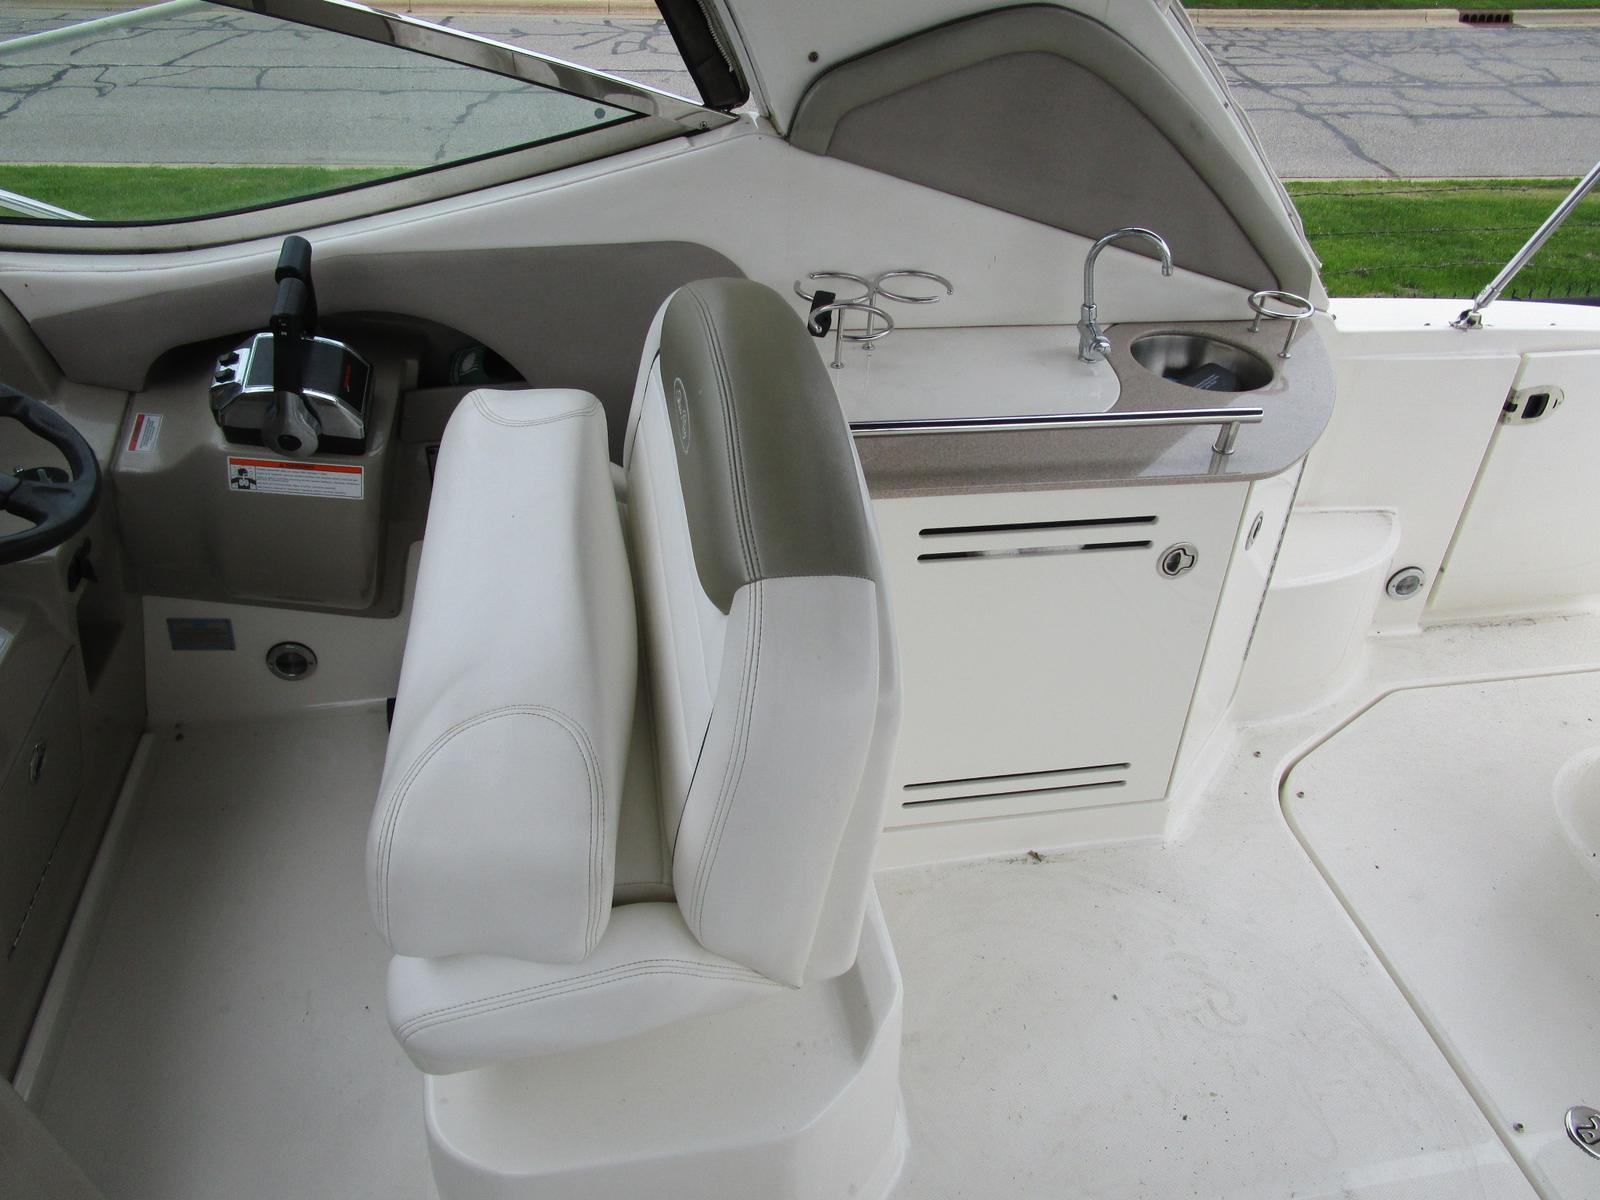 2007 Sea Ray boat for sale, model of the boat is 290 Sundancer & Image # 6 of 10